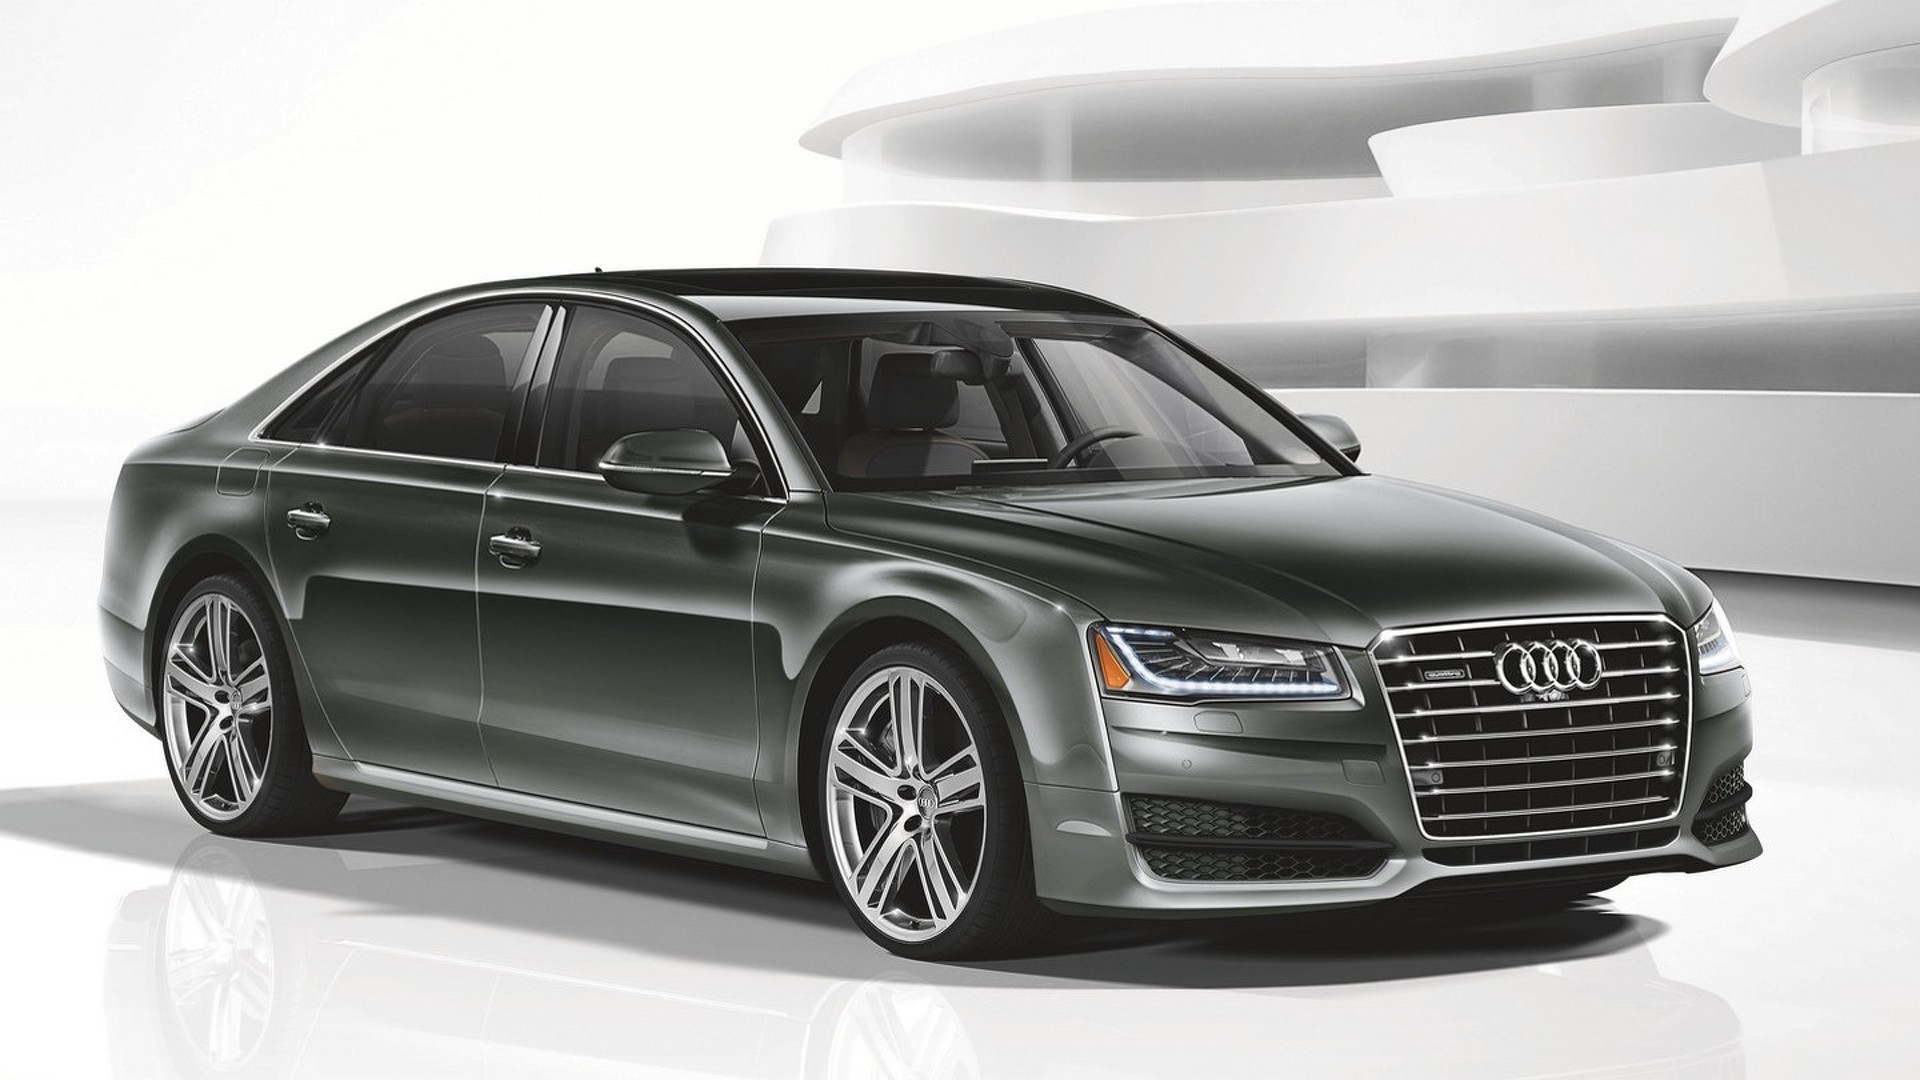 2016 Audi A8 L 4.0T Sport launched in United States with 450 bhp